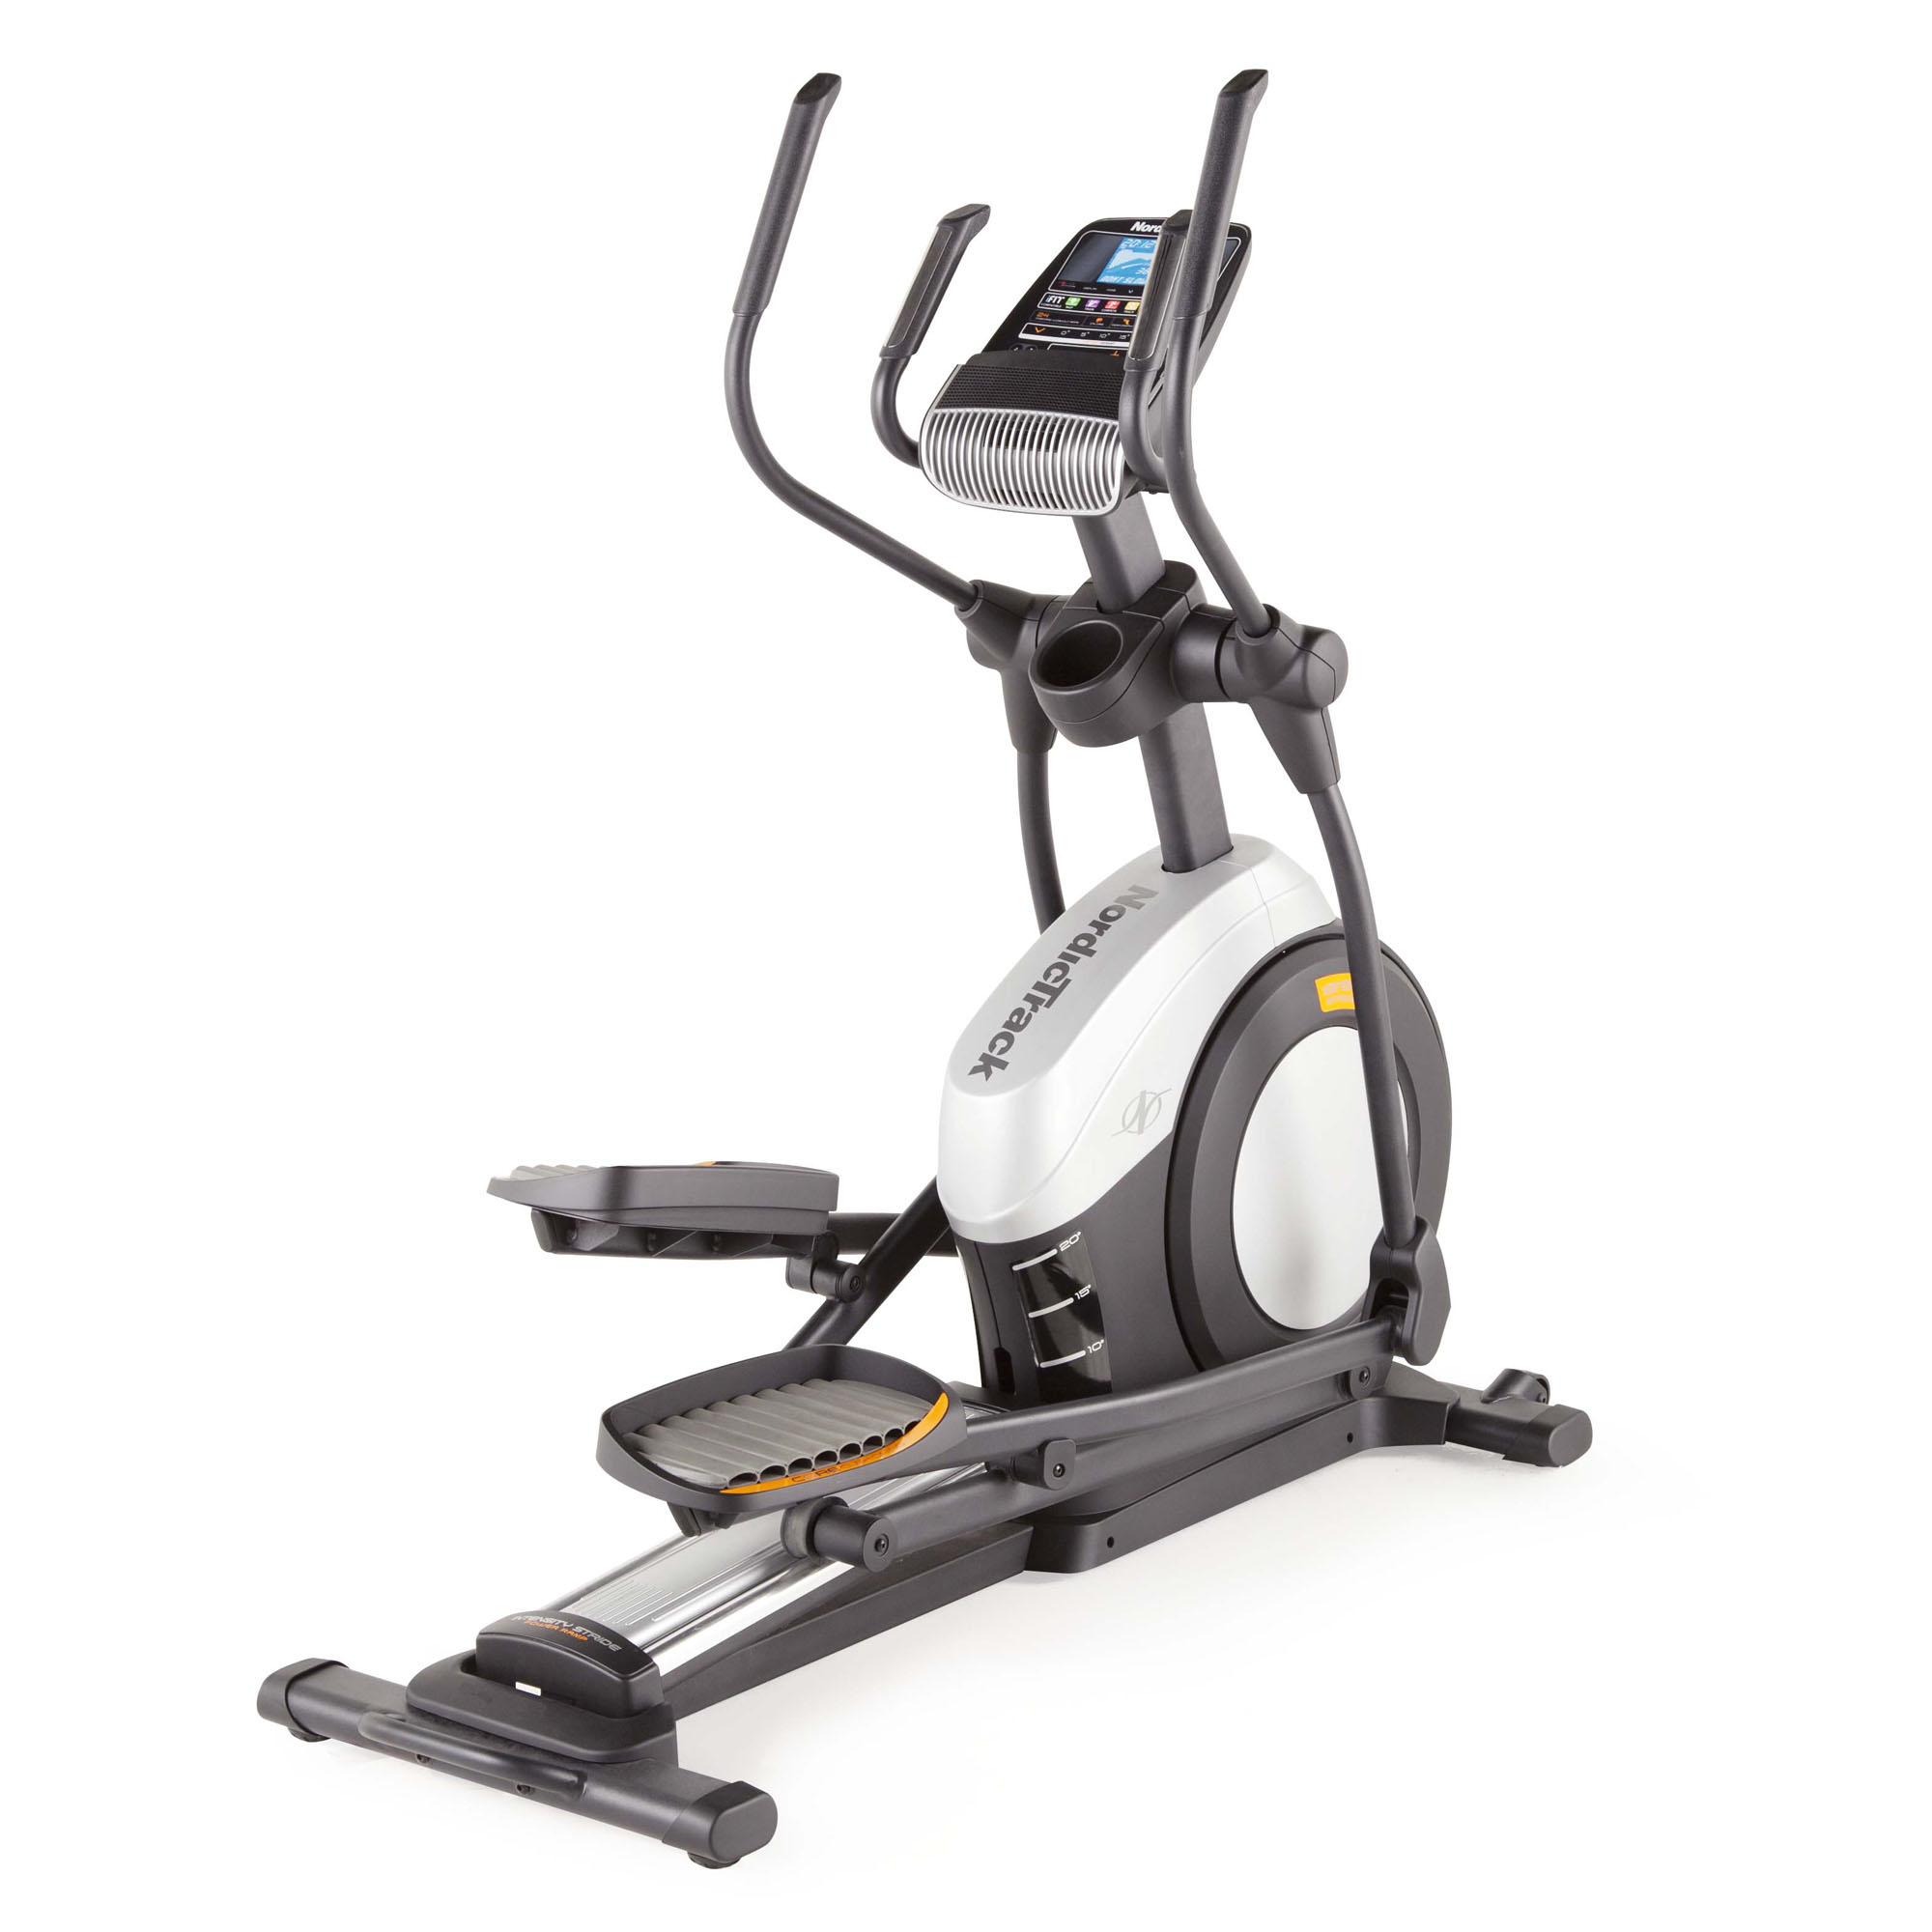 Folding Space Saving Elliptical Cross Trainer For Home